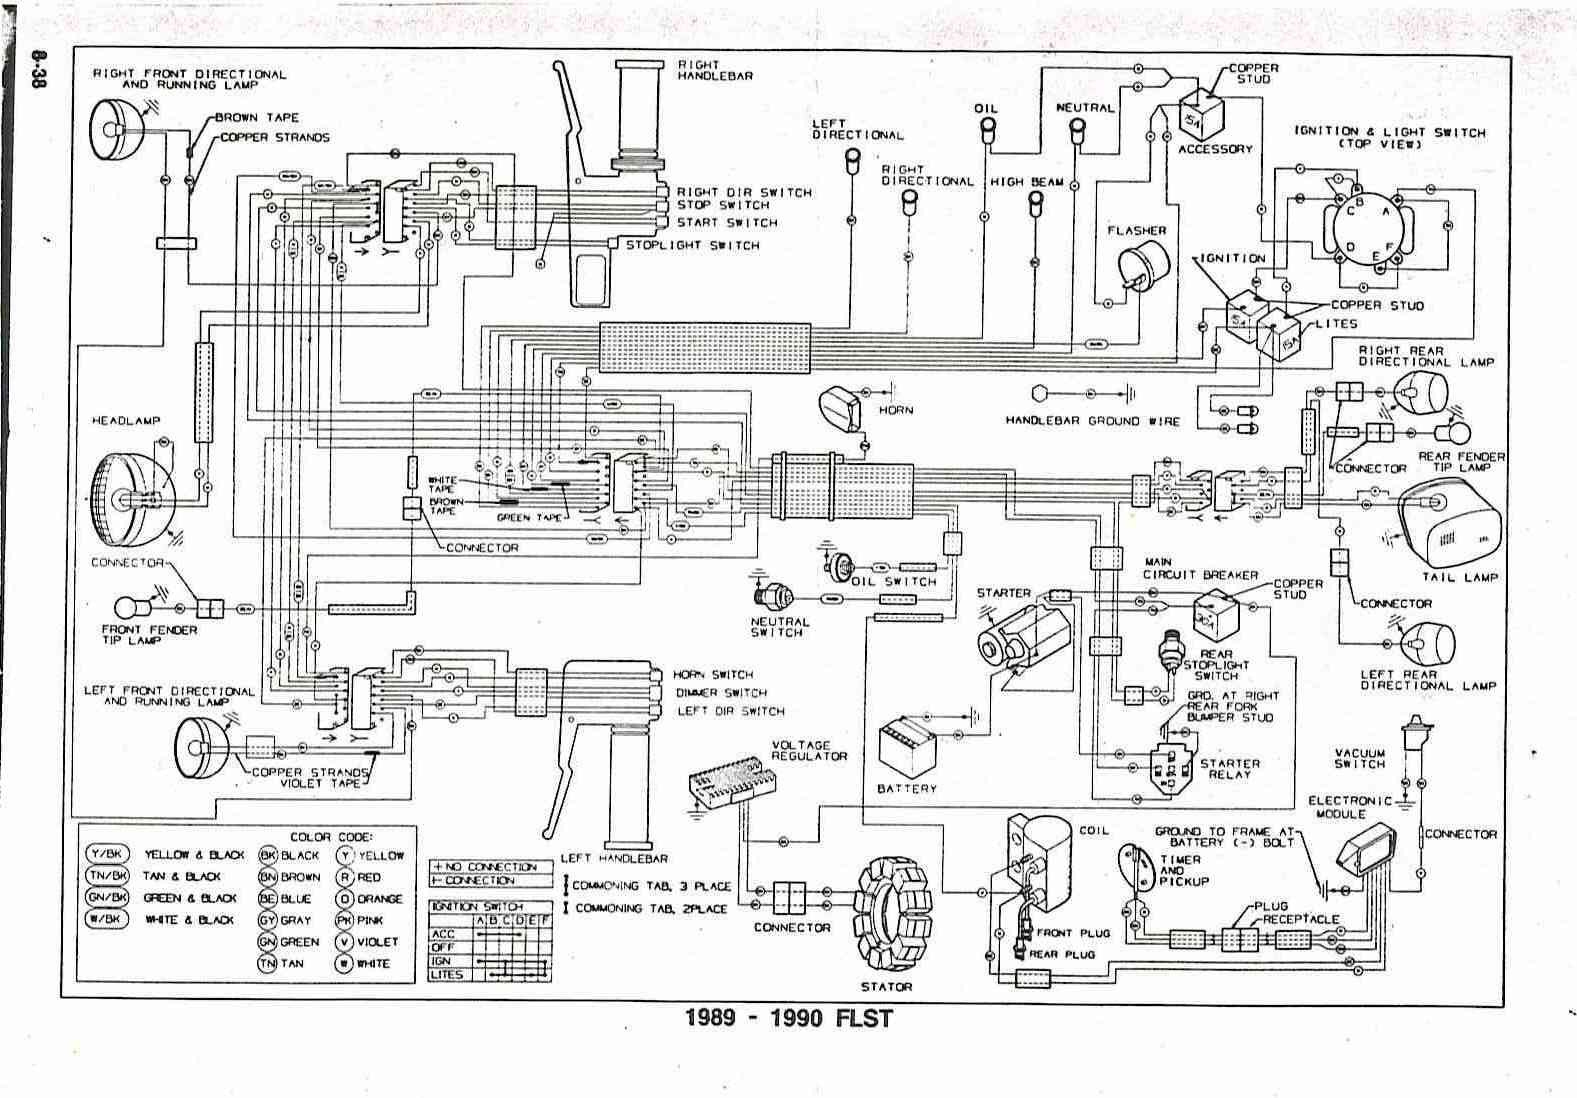 Harley Trailer Wiring Diagram Free Picture Schematic | Wiring Diagram - Harley Davidson Trailer Wiring Diagram